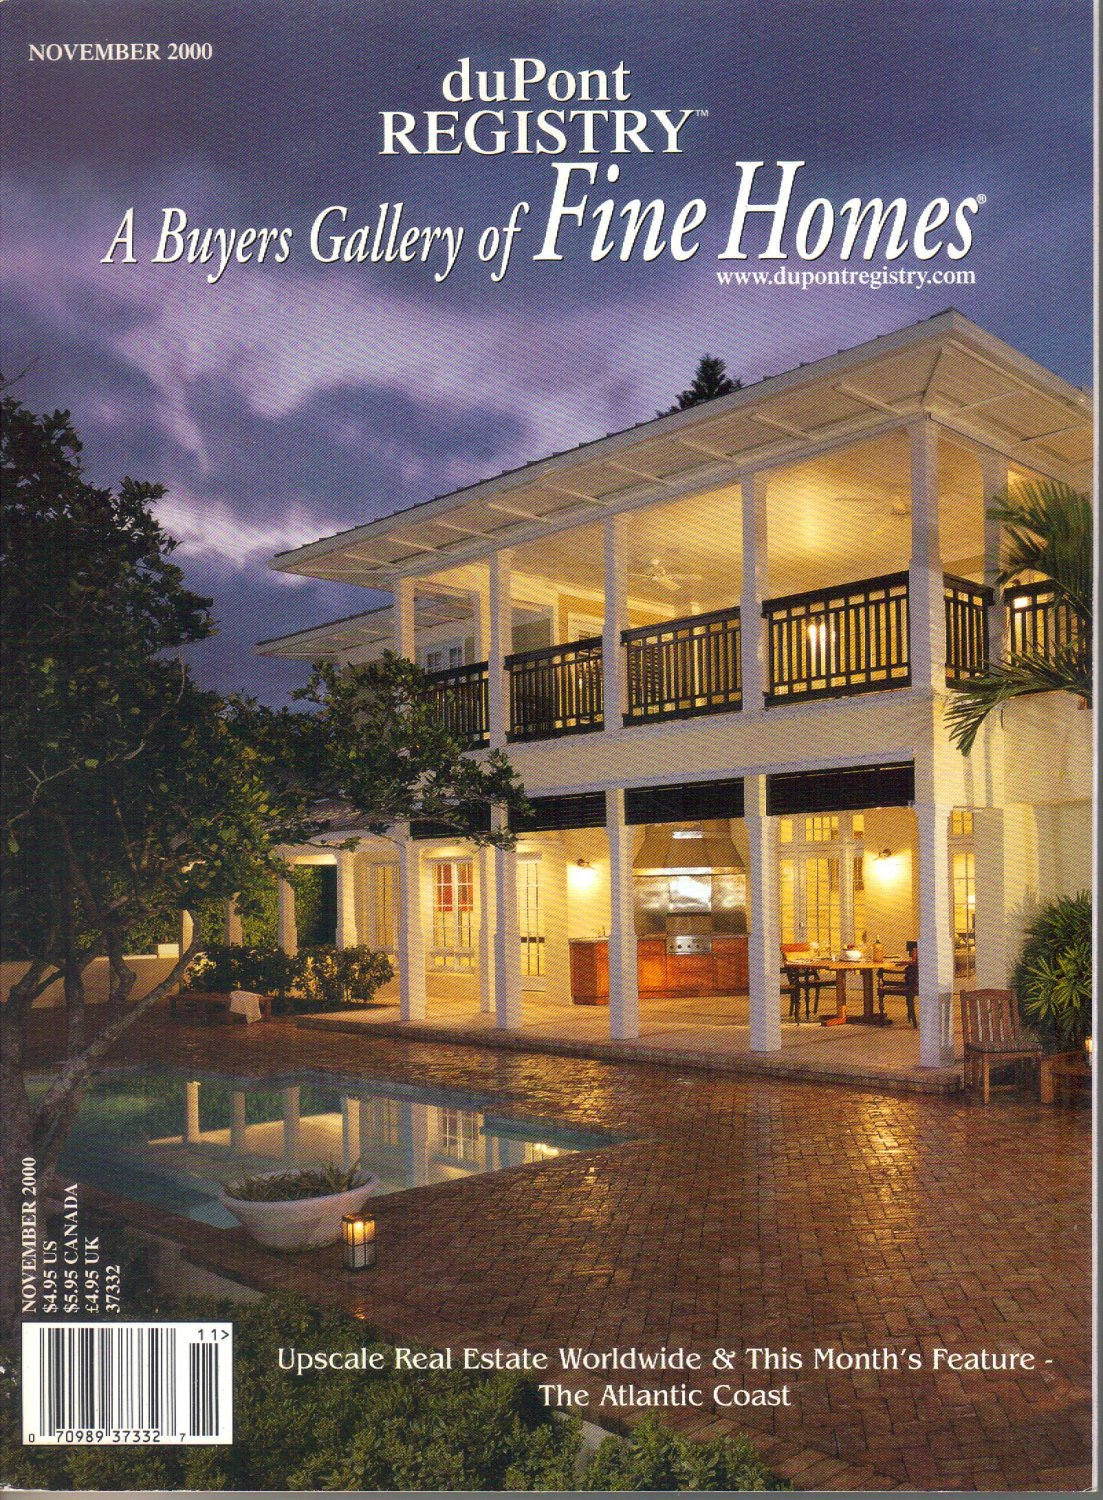 duPont Registry A Buyers Gallery of Fine Homes November 2000 Magazine Rio Vista Isles-Ft Lauderdale